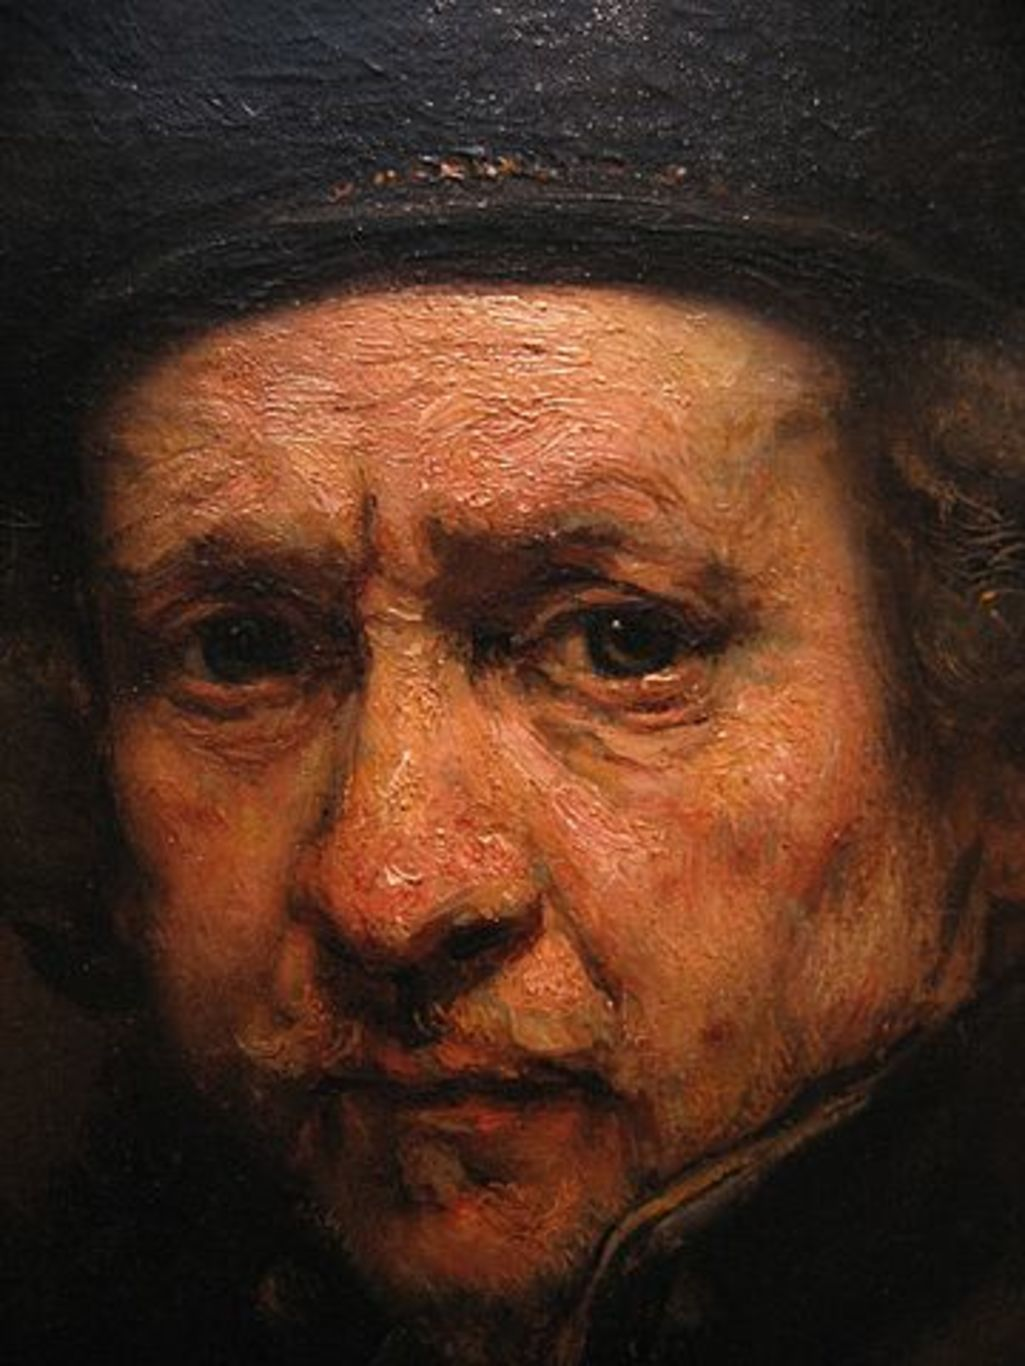 Rembrandt Harmenszoon Van Rijn: Why Do Some Old Men Have Big Red Noses? No, It's Not Alcohol